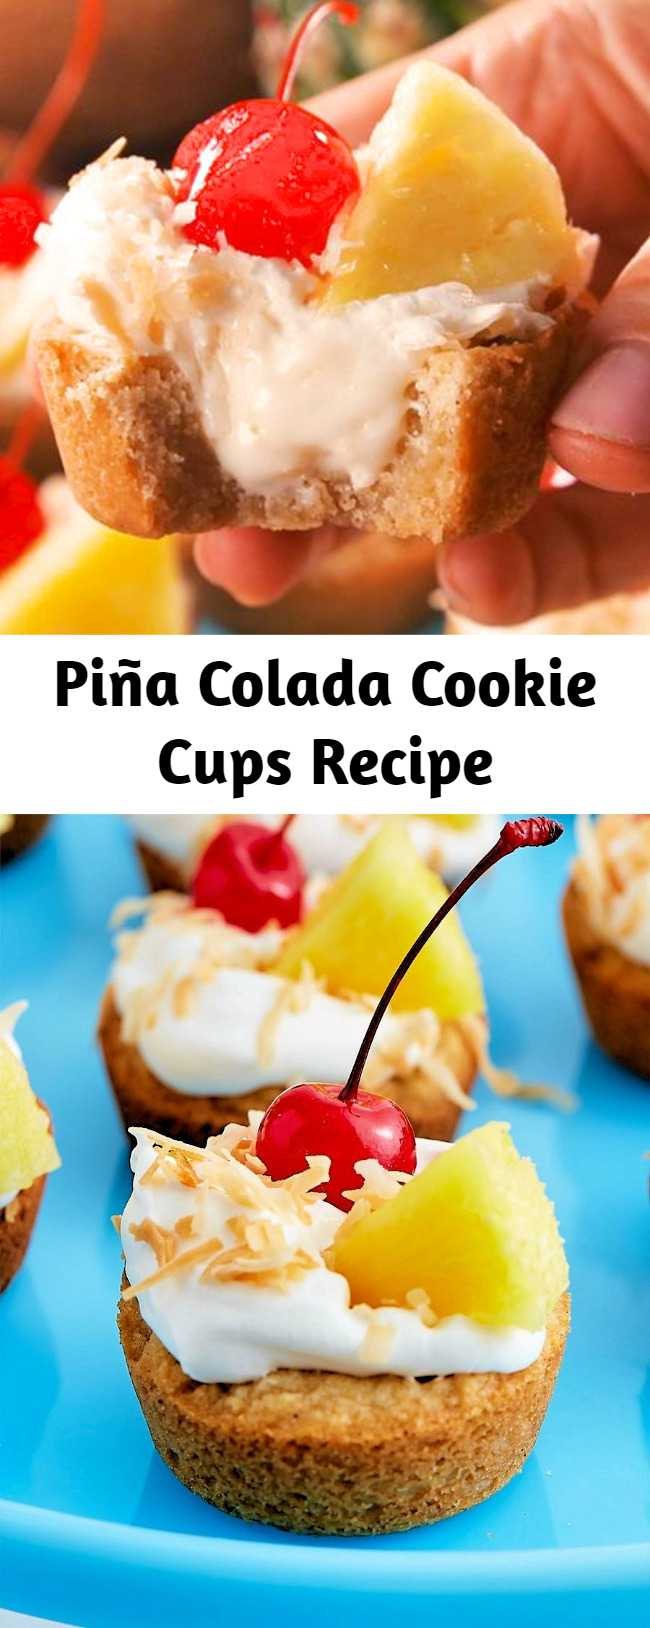 The filling tastes like a cross between a slice of cheesecake and a piña colada. If you're bringing these to a party with little ones, feel free to skip the booze.